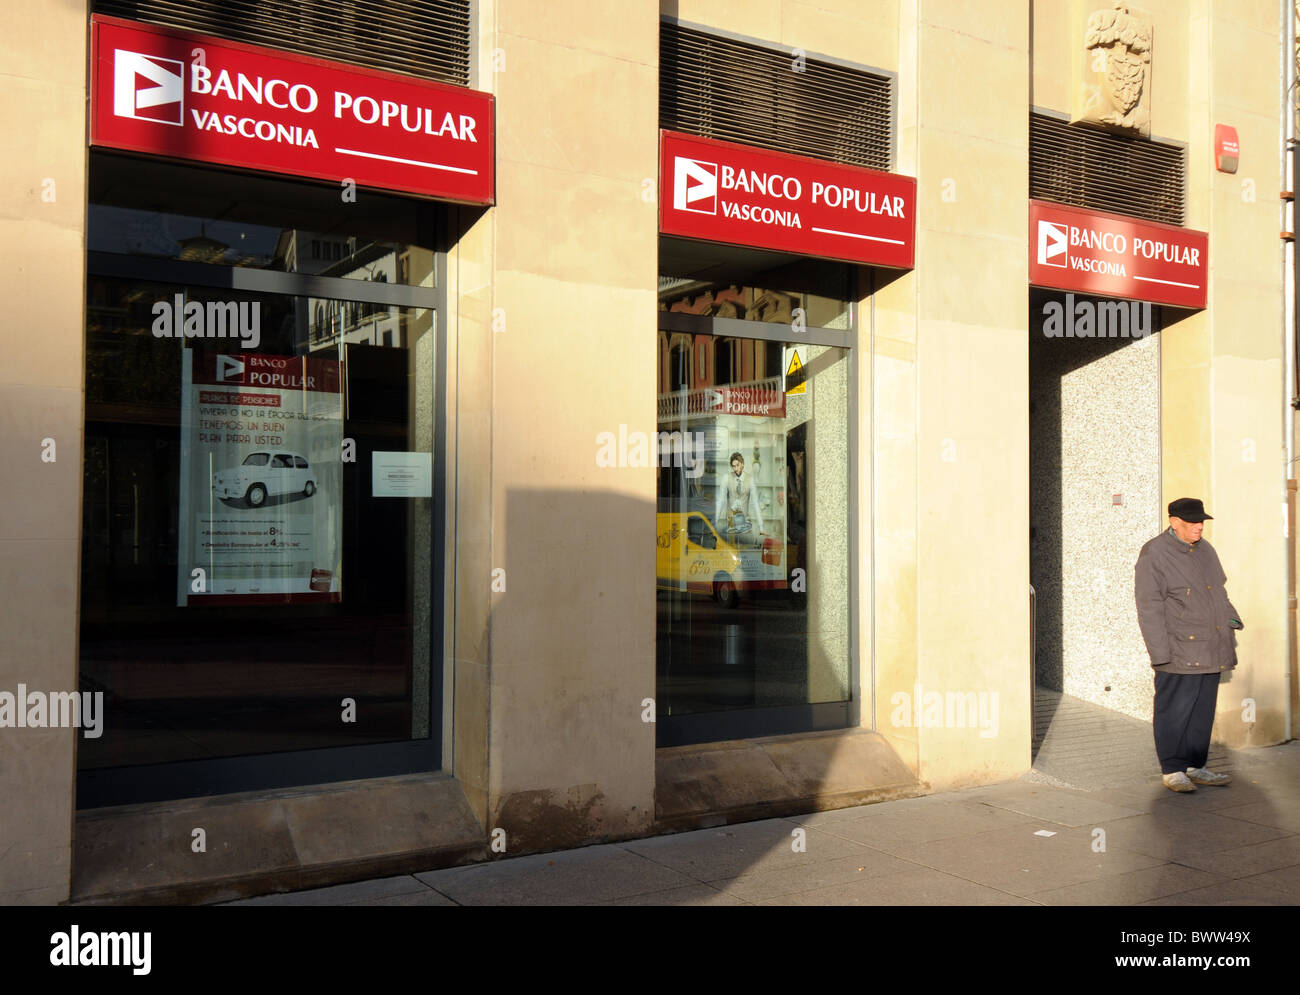 Bank Popular, Spain - Stock Image